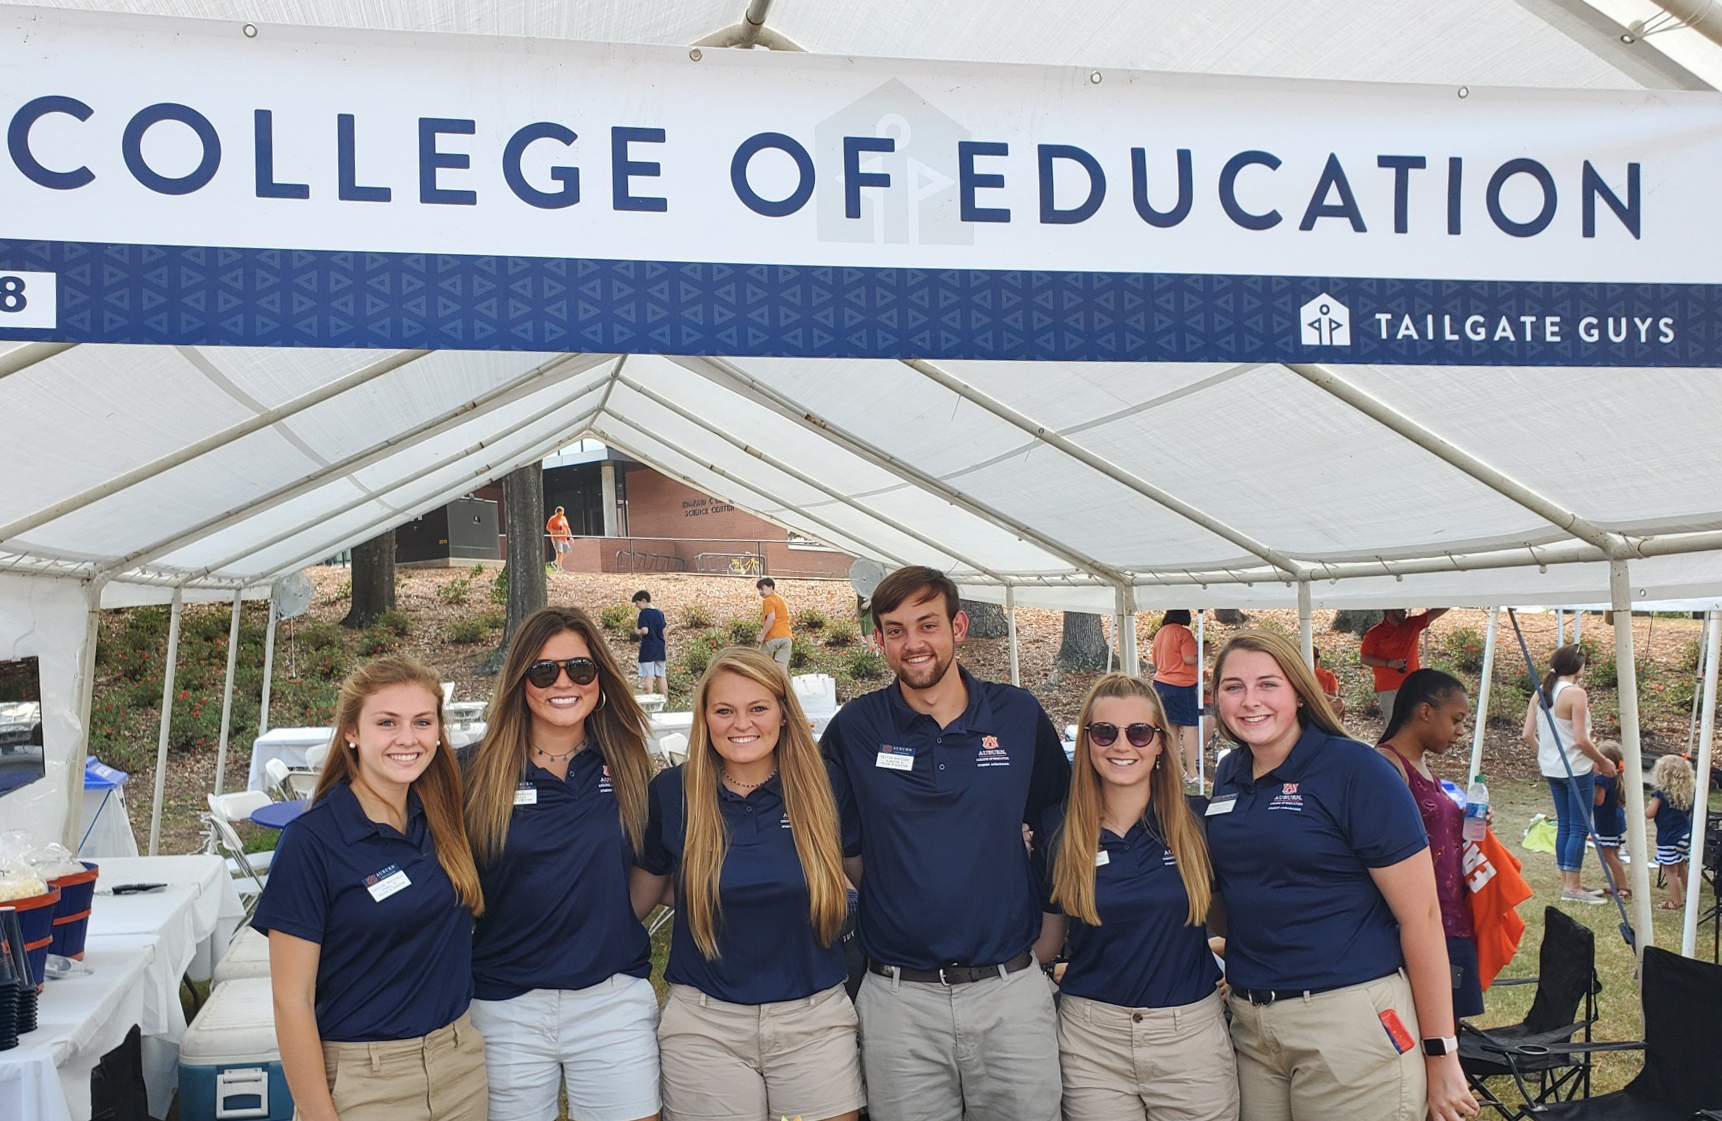 Student Ambassadors standing infront of the tailgate tent